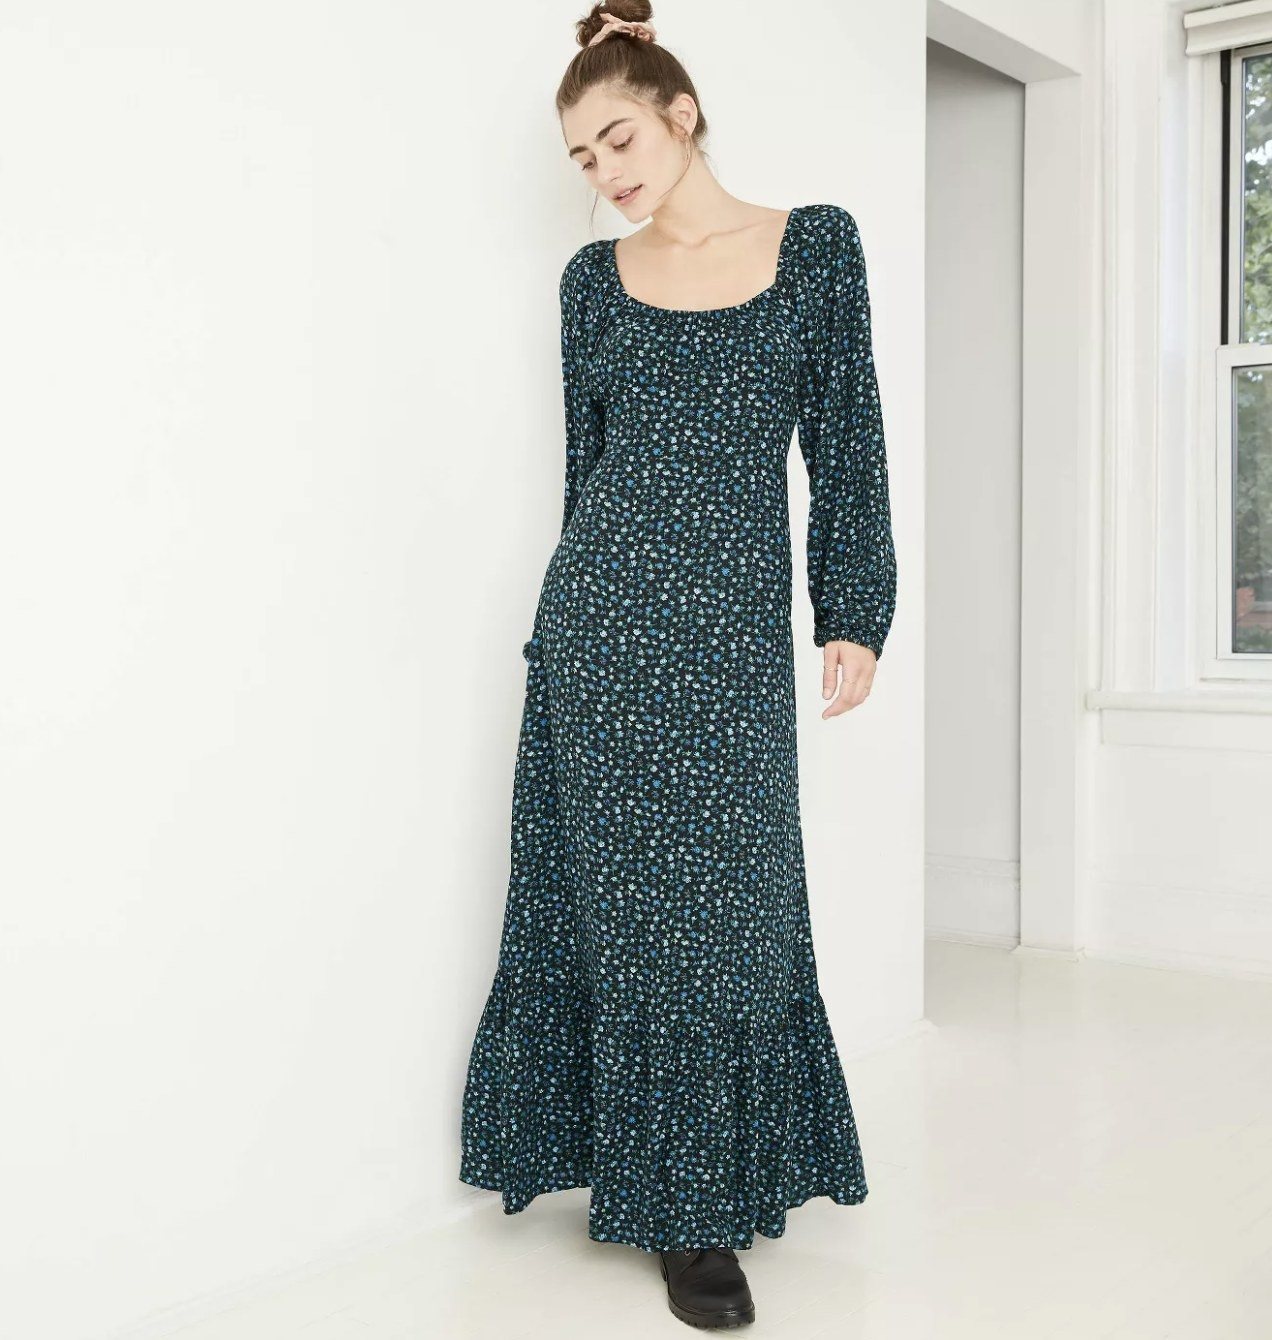 long-sleeve floral midi dress in green with blue and light green pattern